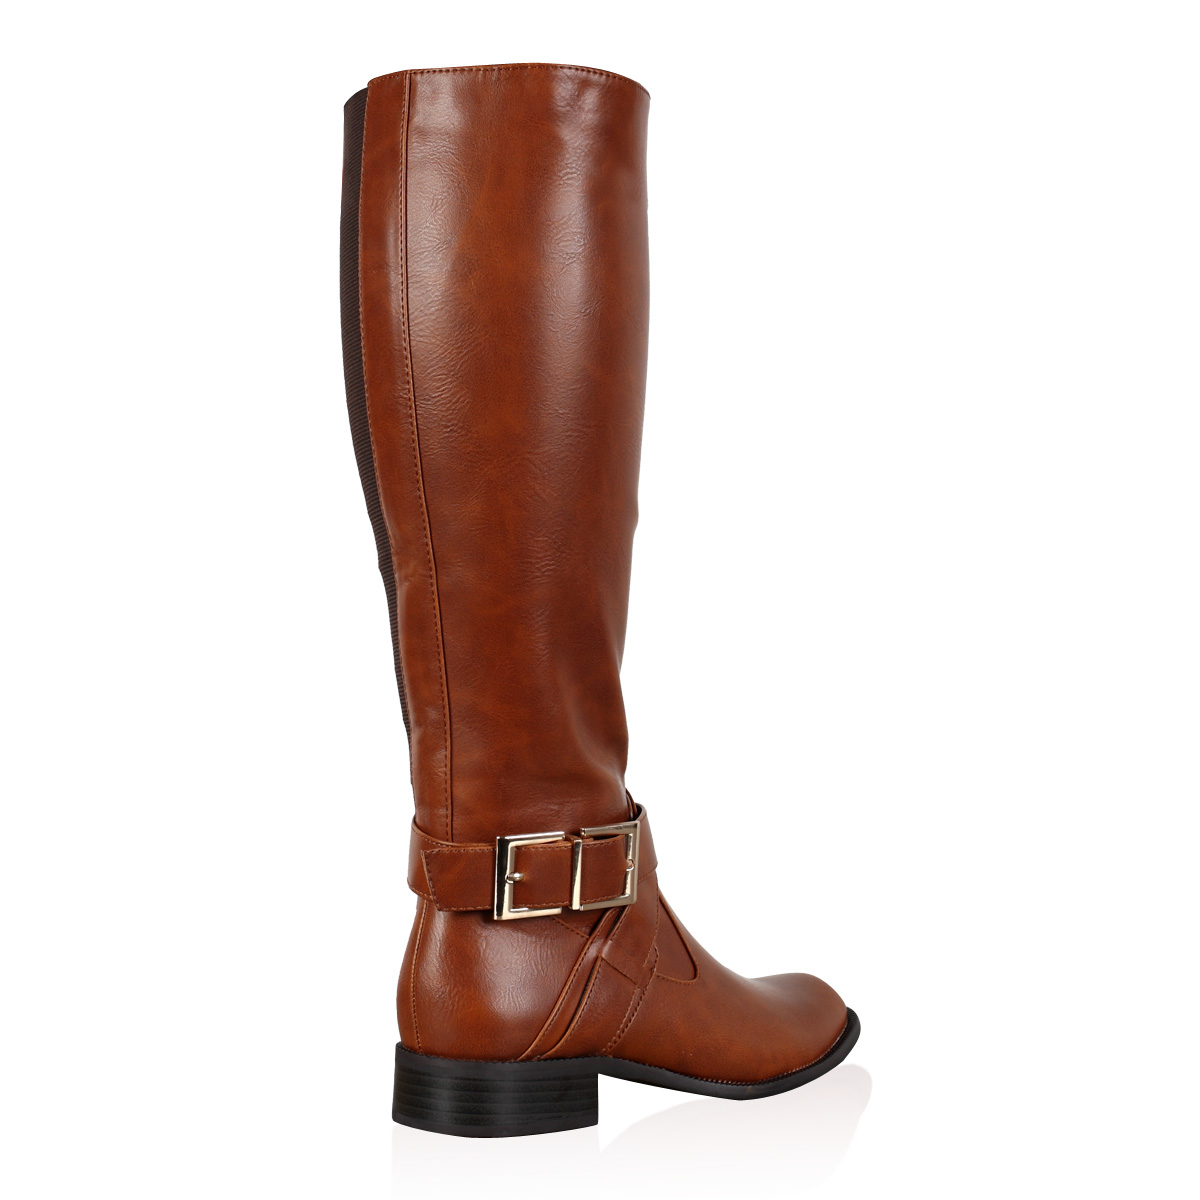 Luxury  Boots  Daniel  Daniel Huyton Brown Leather Women39s Riding Boot